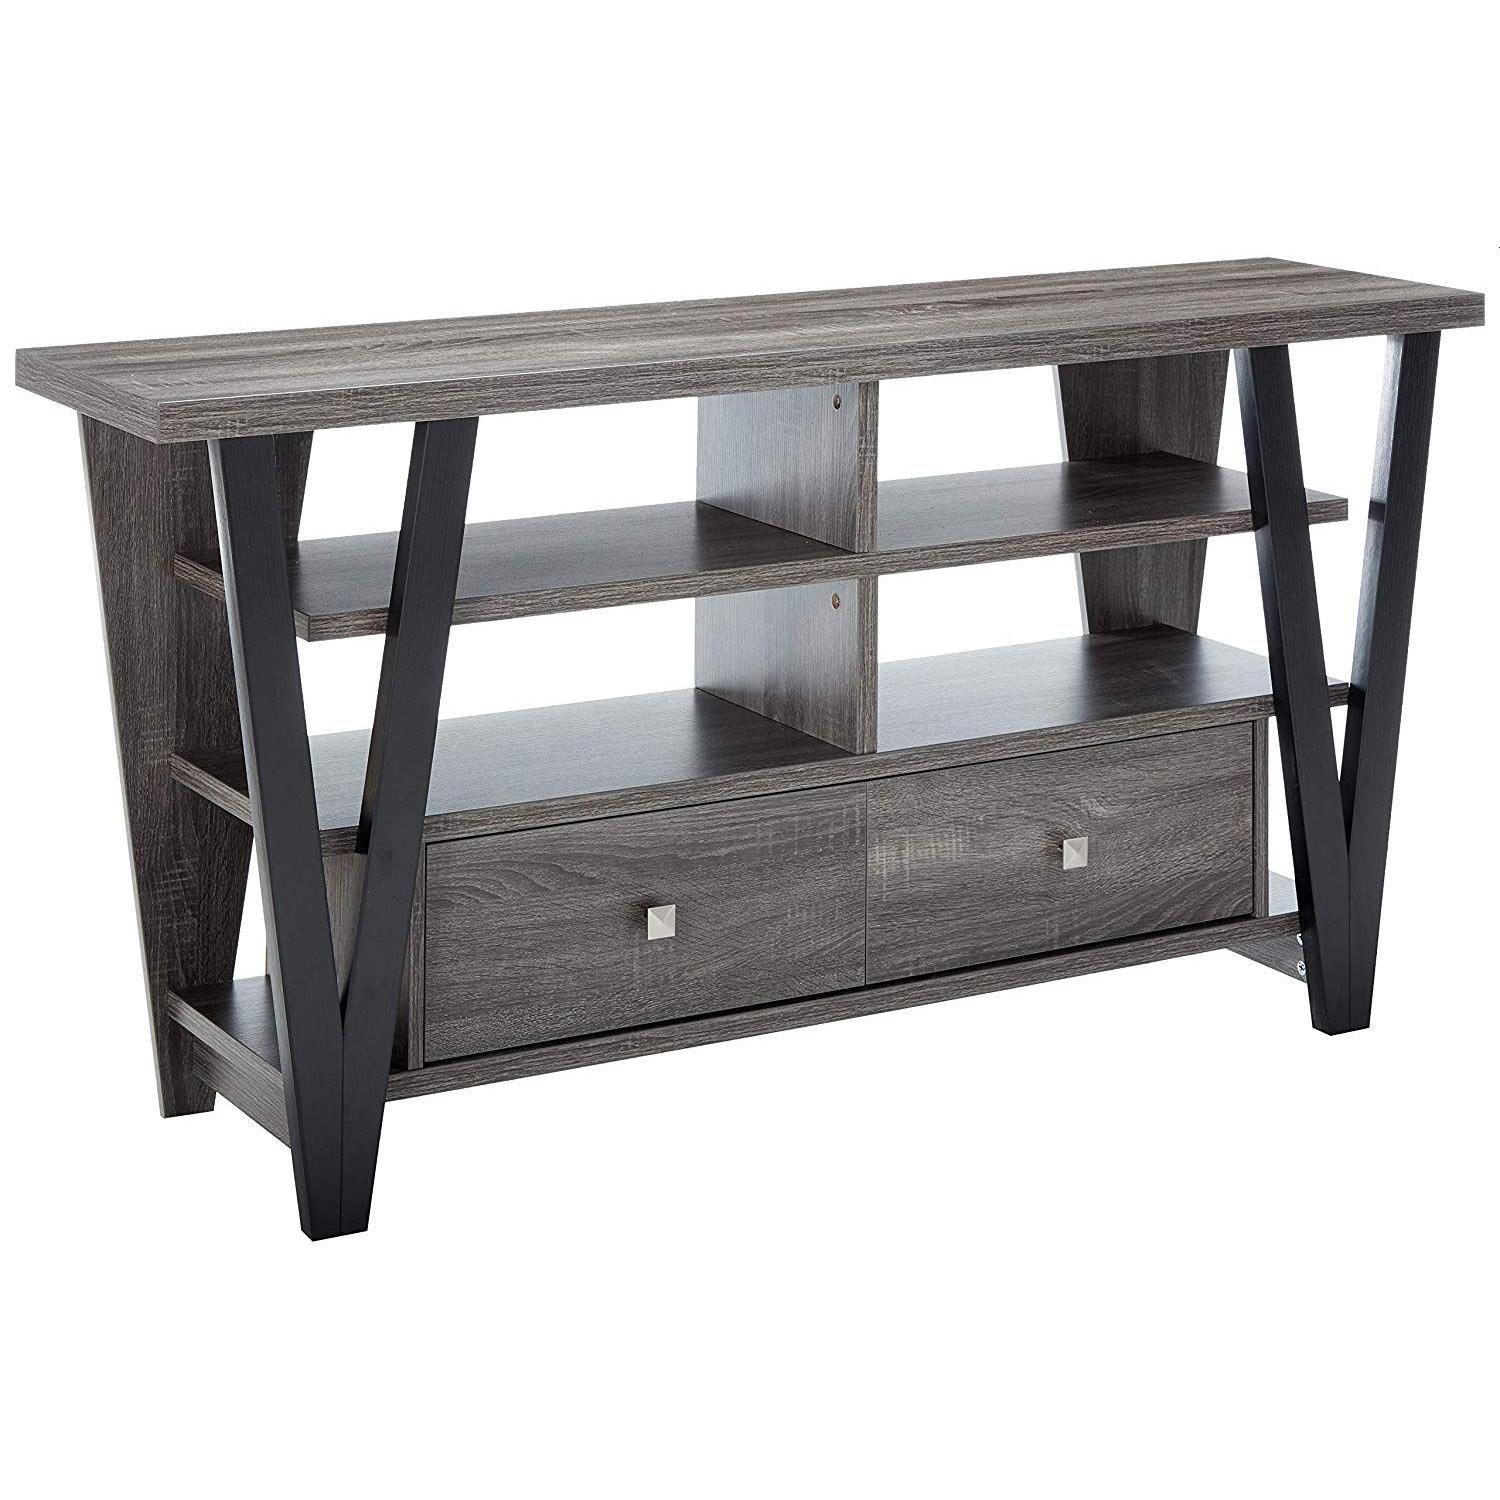 Modern TV Stand in Grey-Black Finish w/ Shelves & Drawers - image-4